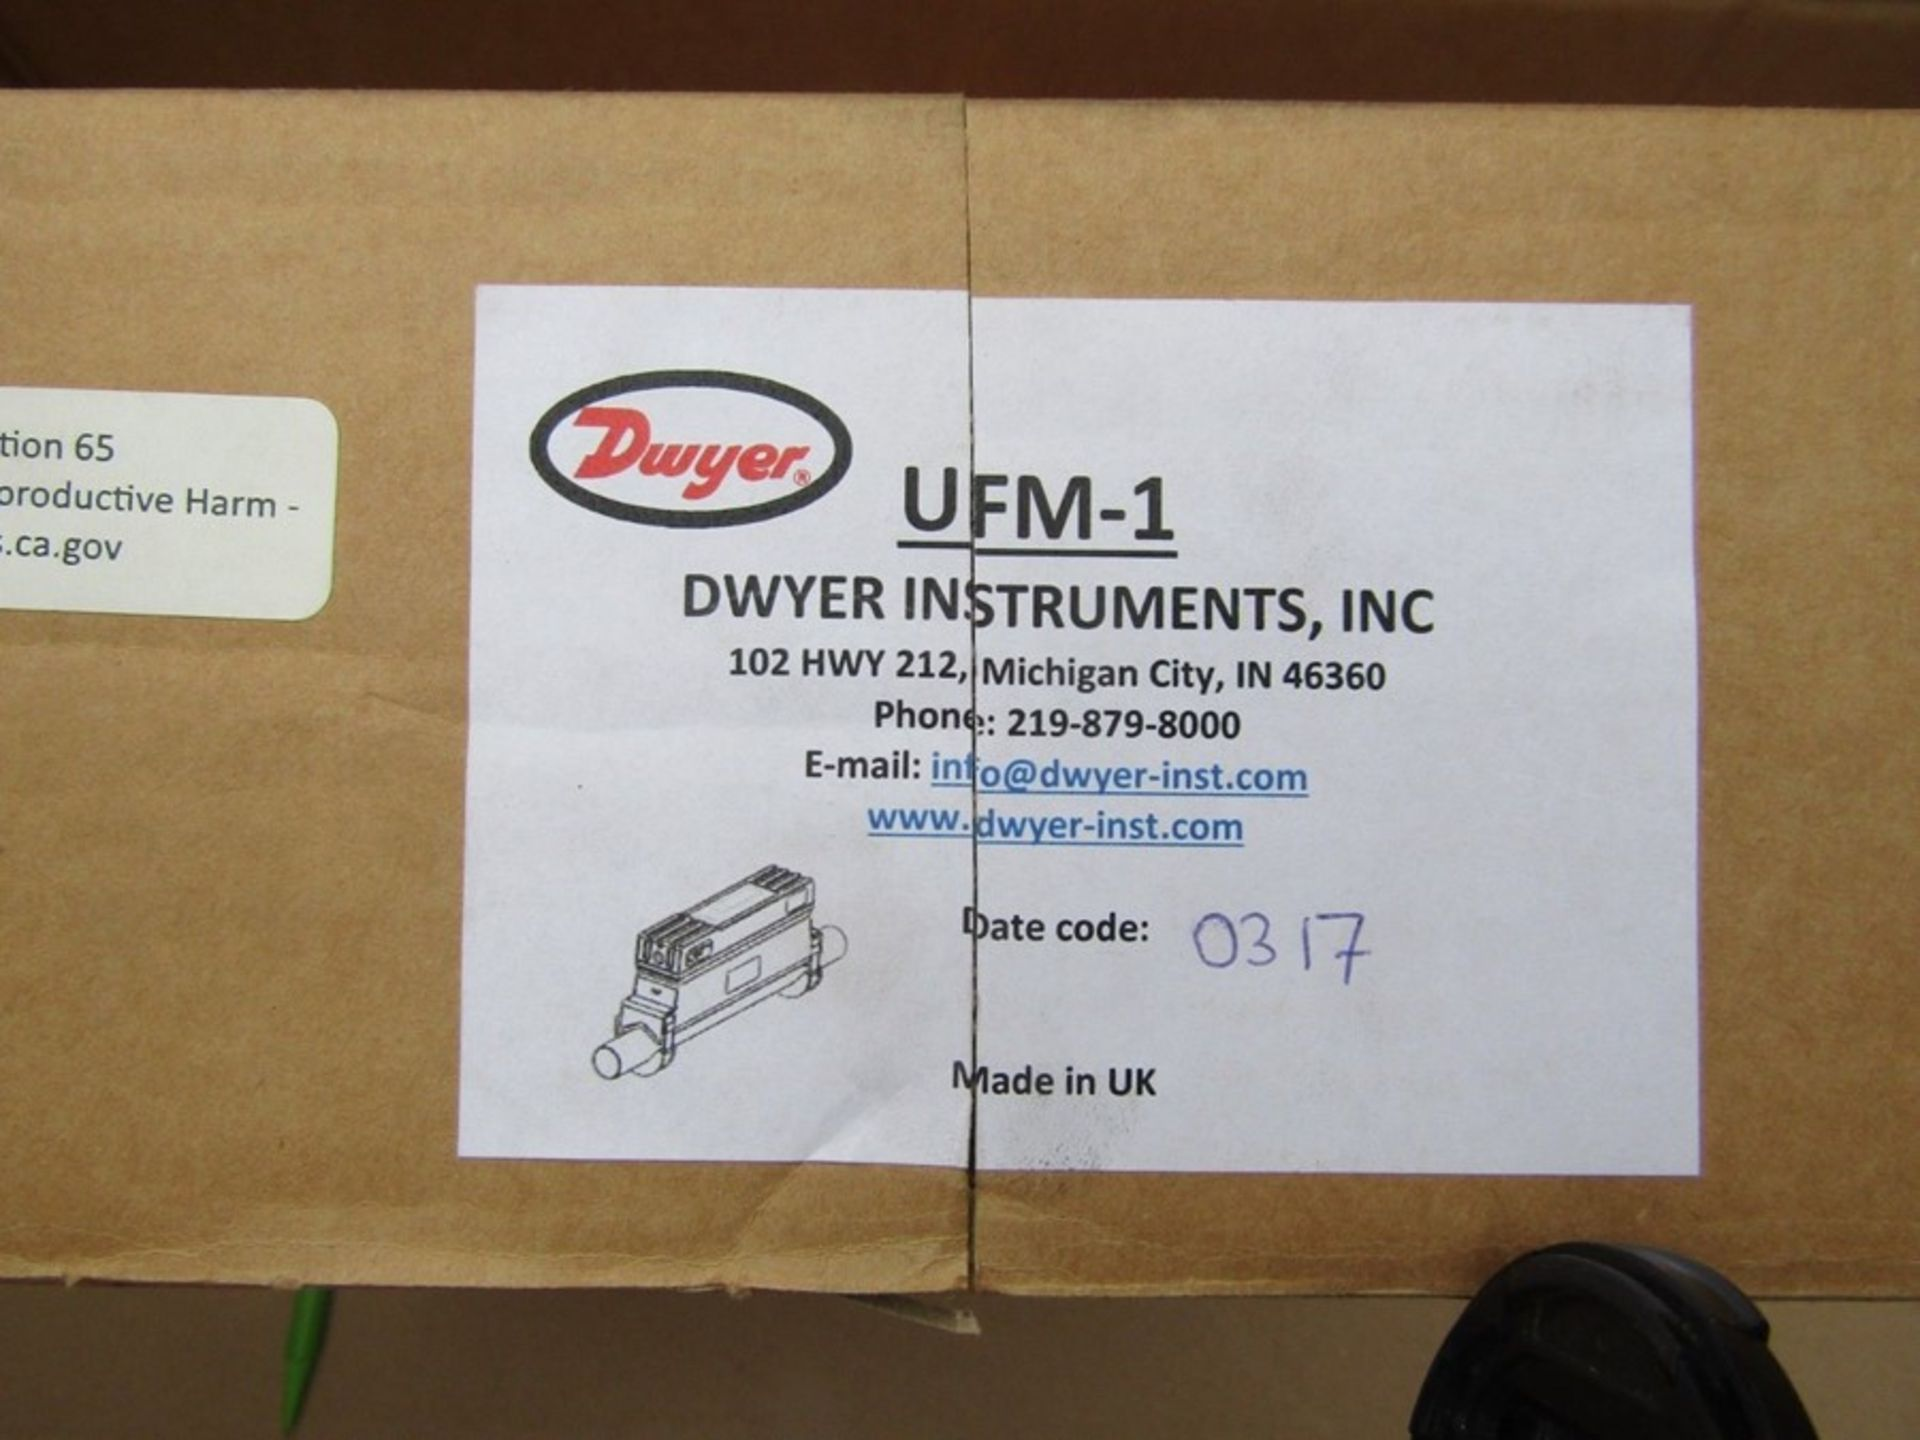 DWYER INSTRUMENTS Ulttrasonic Flow Meter 0.1 - 10 m/s, UFM Series - T&M 9067730 - Image 3 of 4